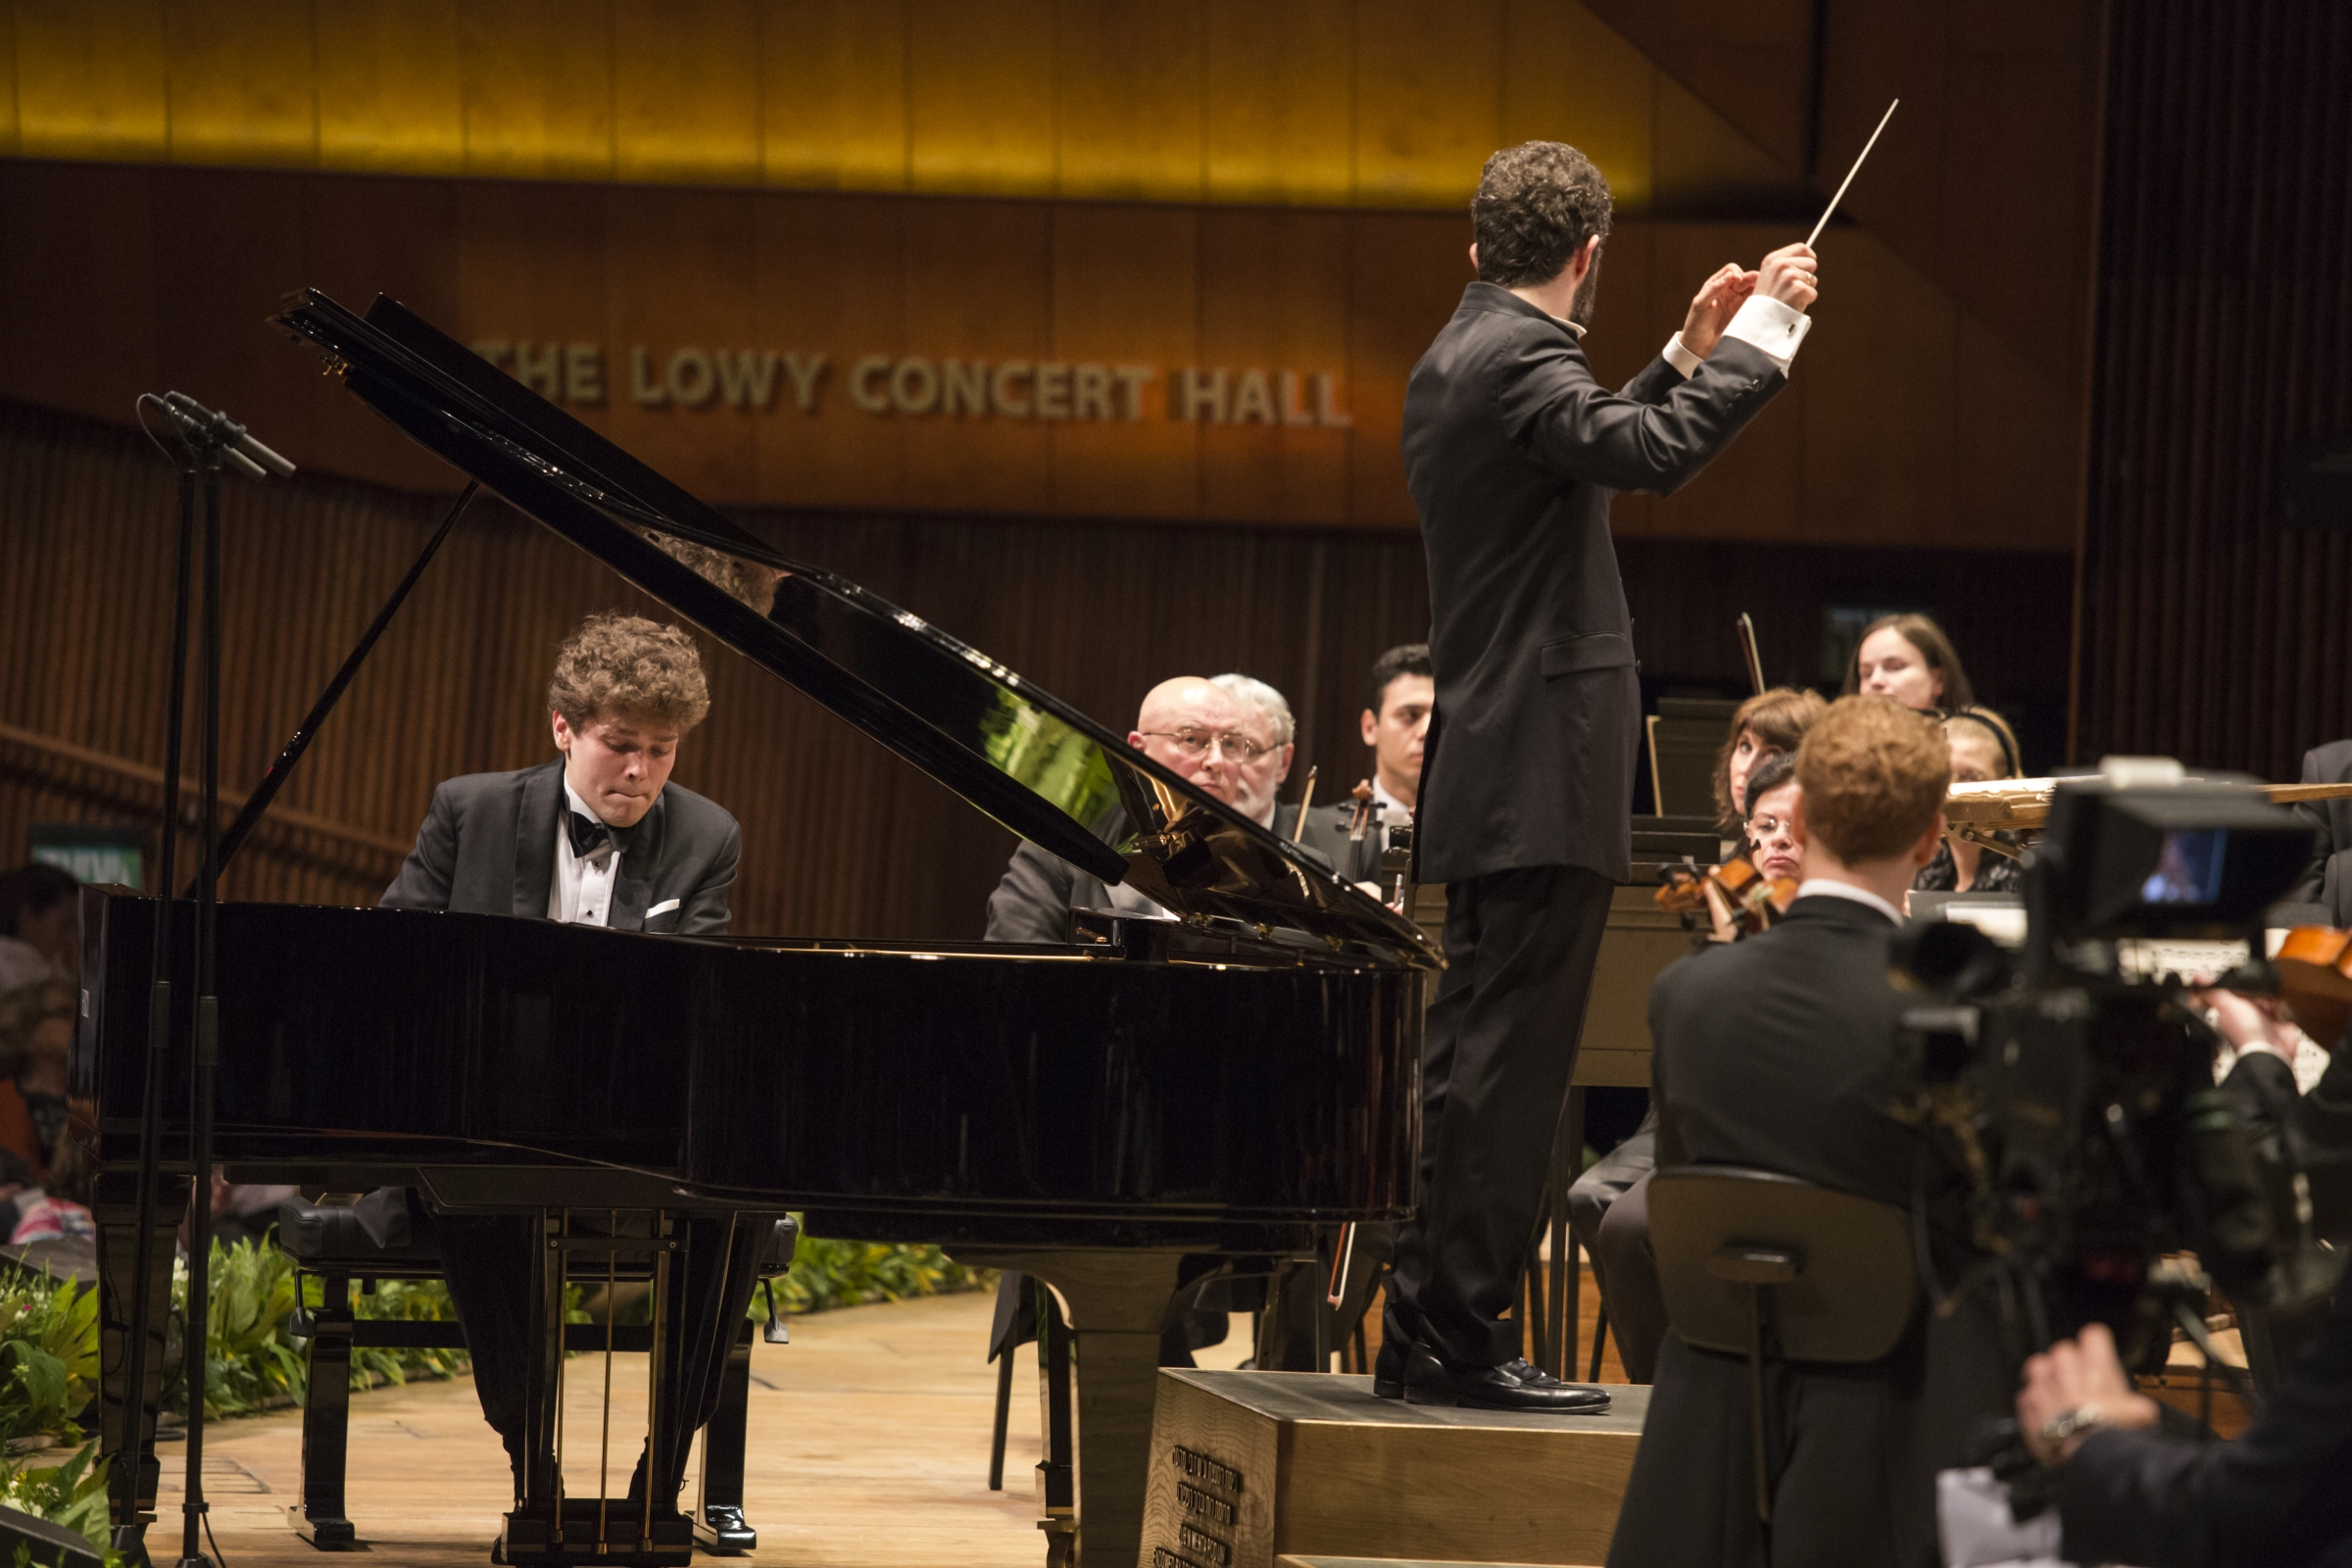 Szymon Nehring is the winner of the 15th Arthur Rubinstein International Piano Master Competition